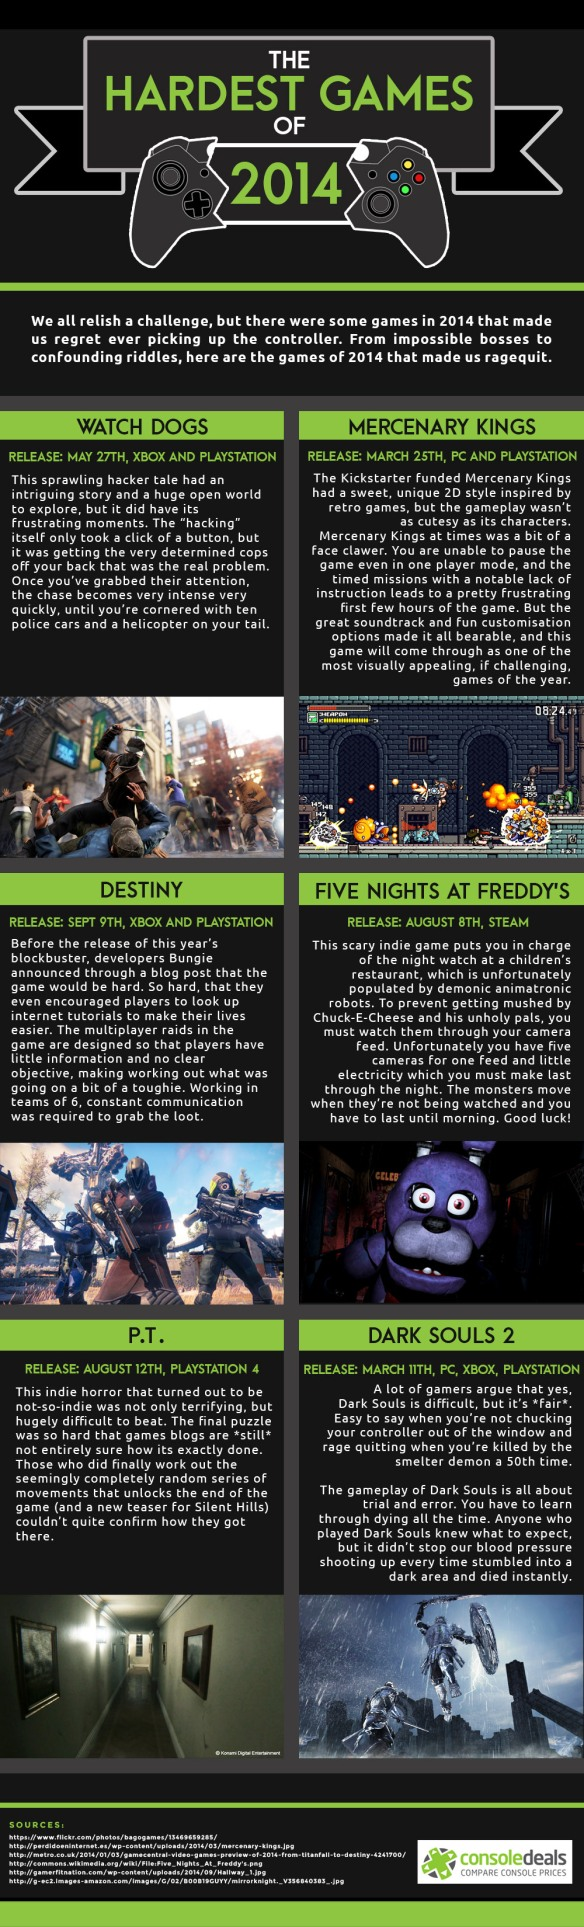 Hardest Games of 2014 - Infographic